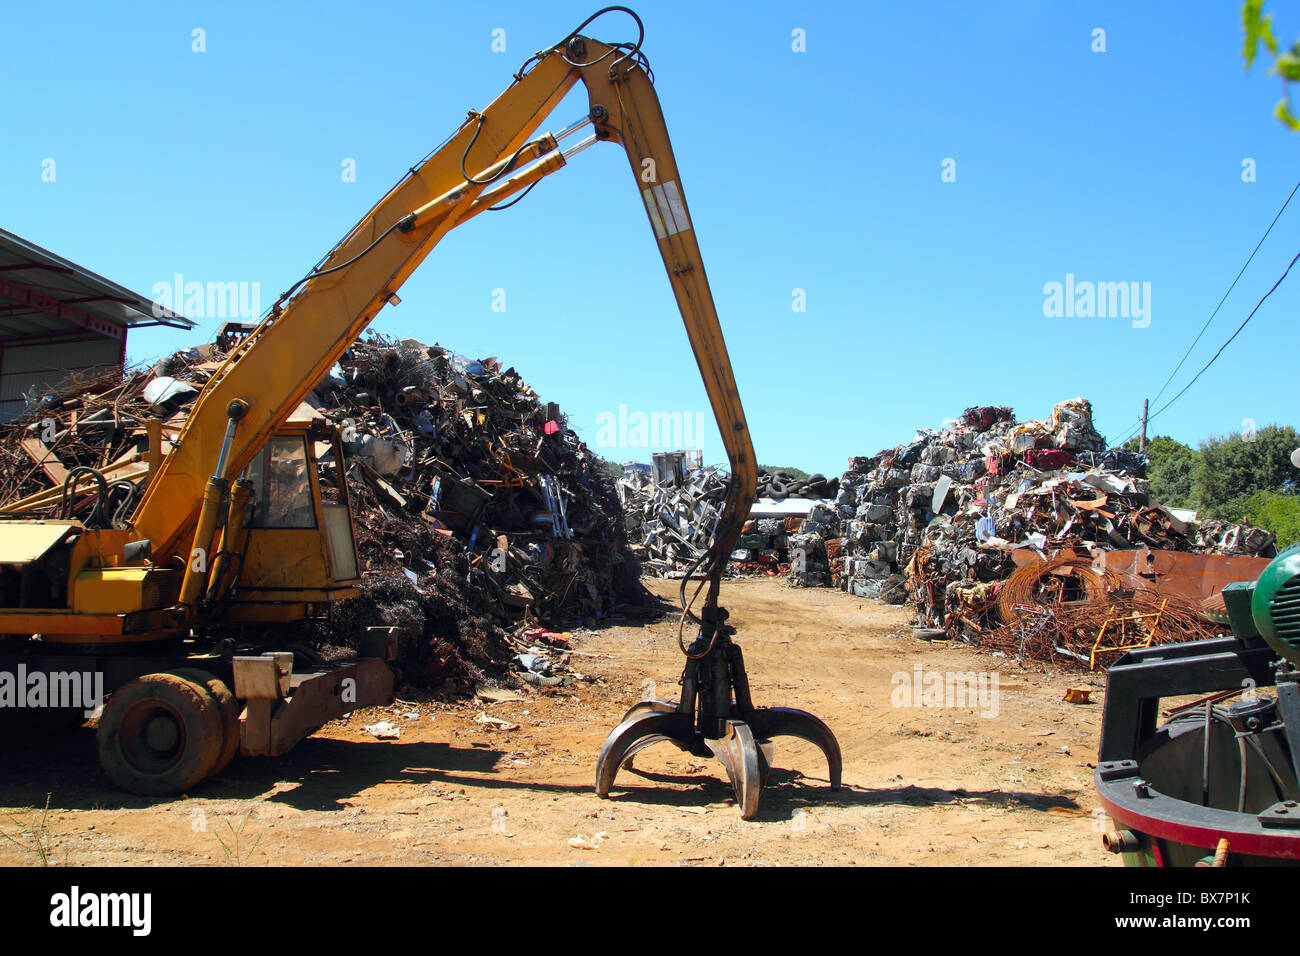 Recycling Station Bremen Junk Yard Crane Stock Photos & Junk Yard Crane Stock